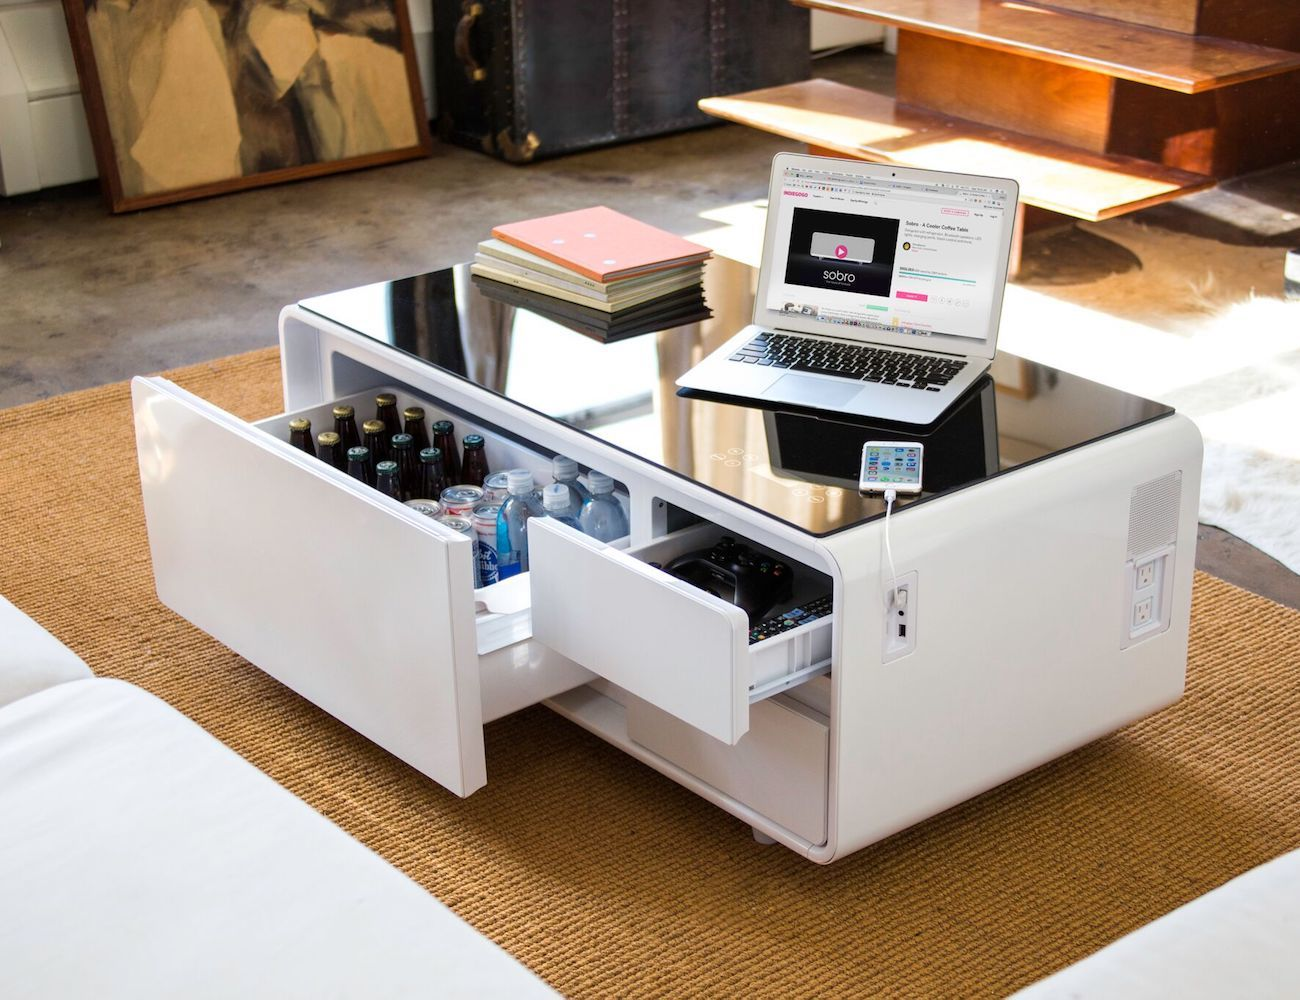 Beer Cooler Coffee Table Sobro Cooler Coffee Table Review The Gadget Flow